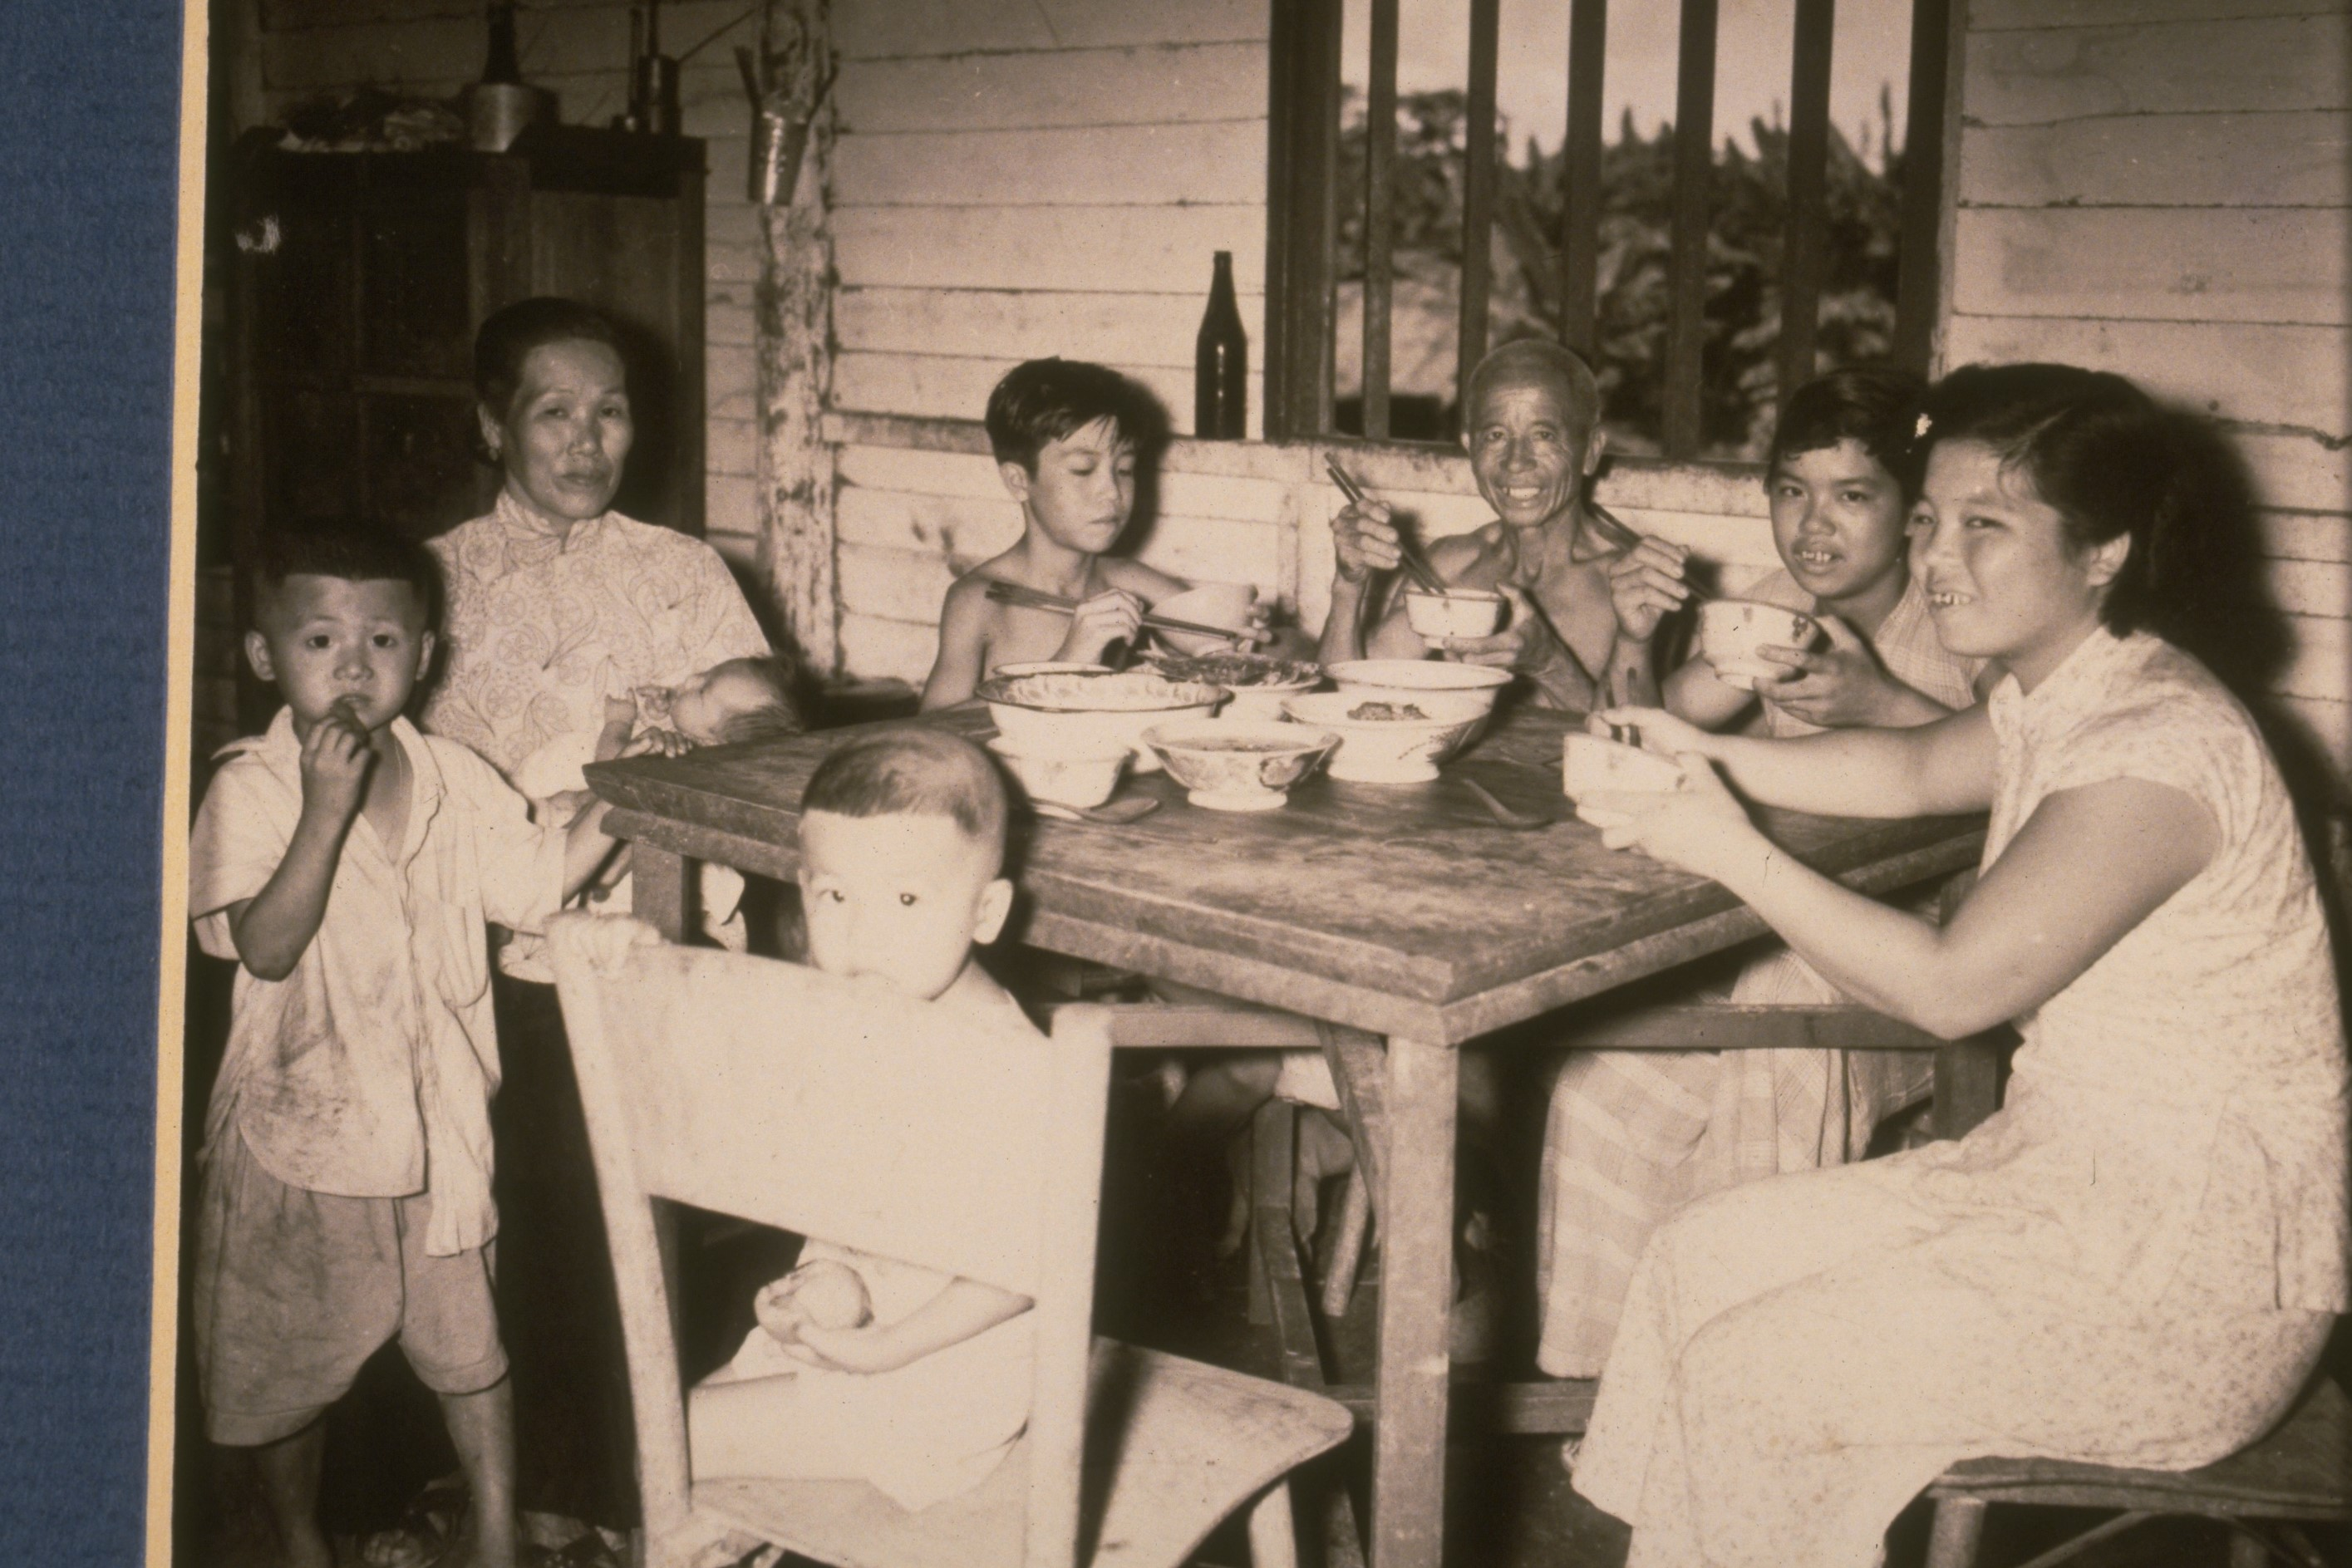 Family dinner in a Chinese kampung house